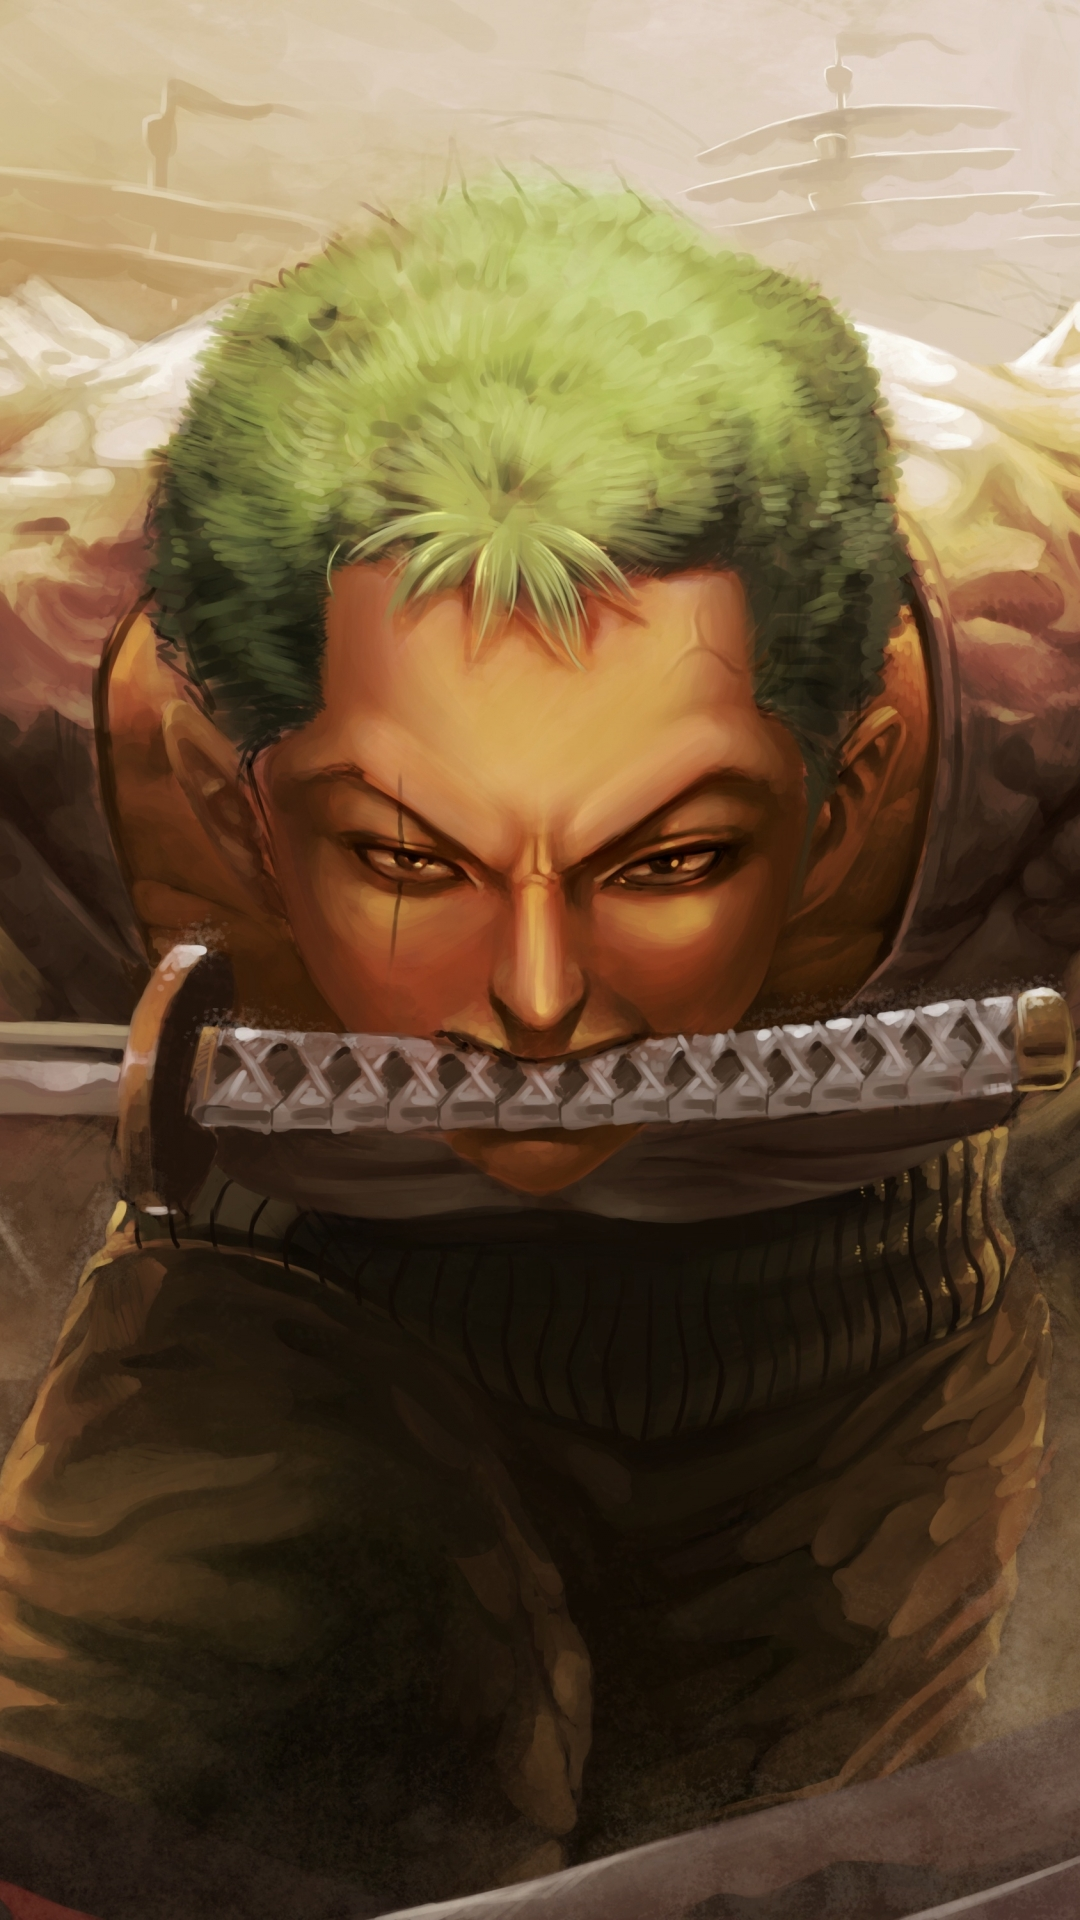 Roronoa Zoro Wallpaper Tablet 1080x1920 Wallpaper Teahub Io